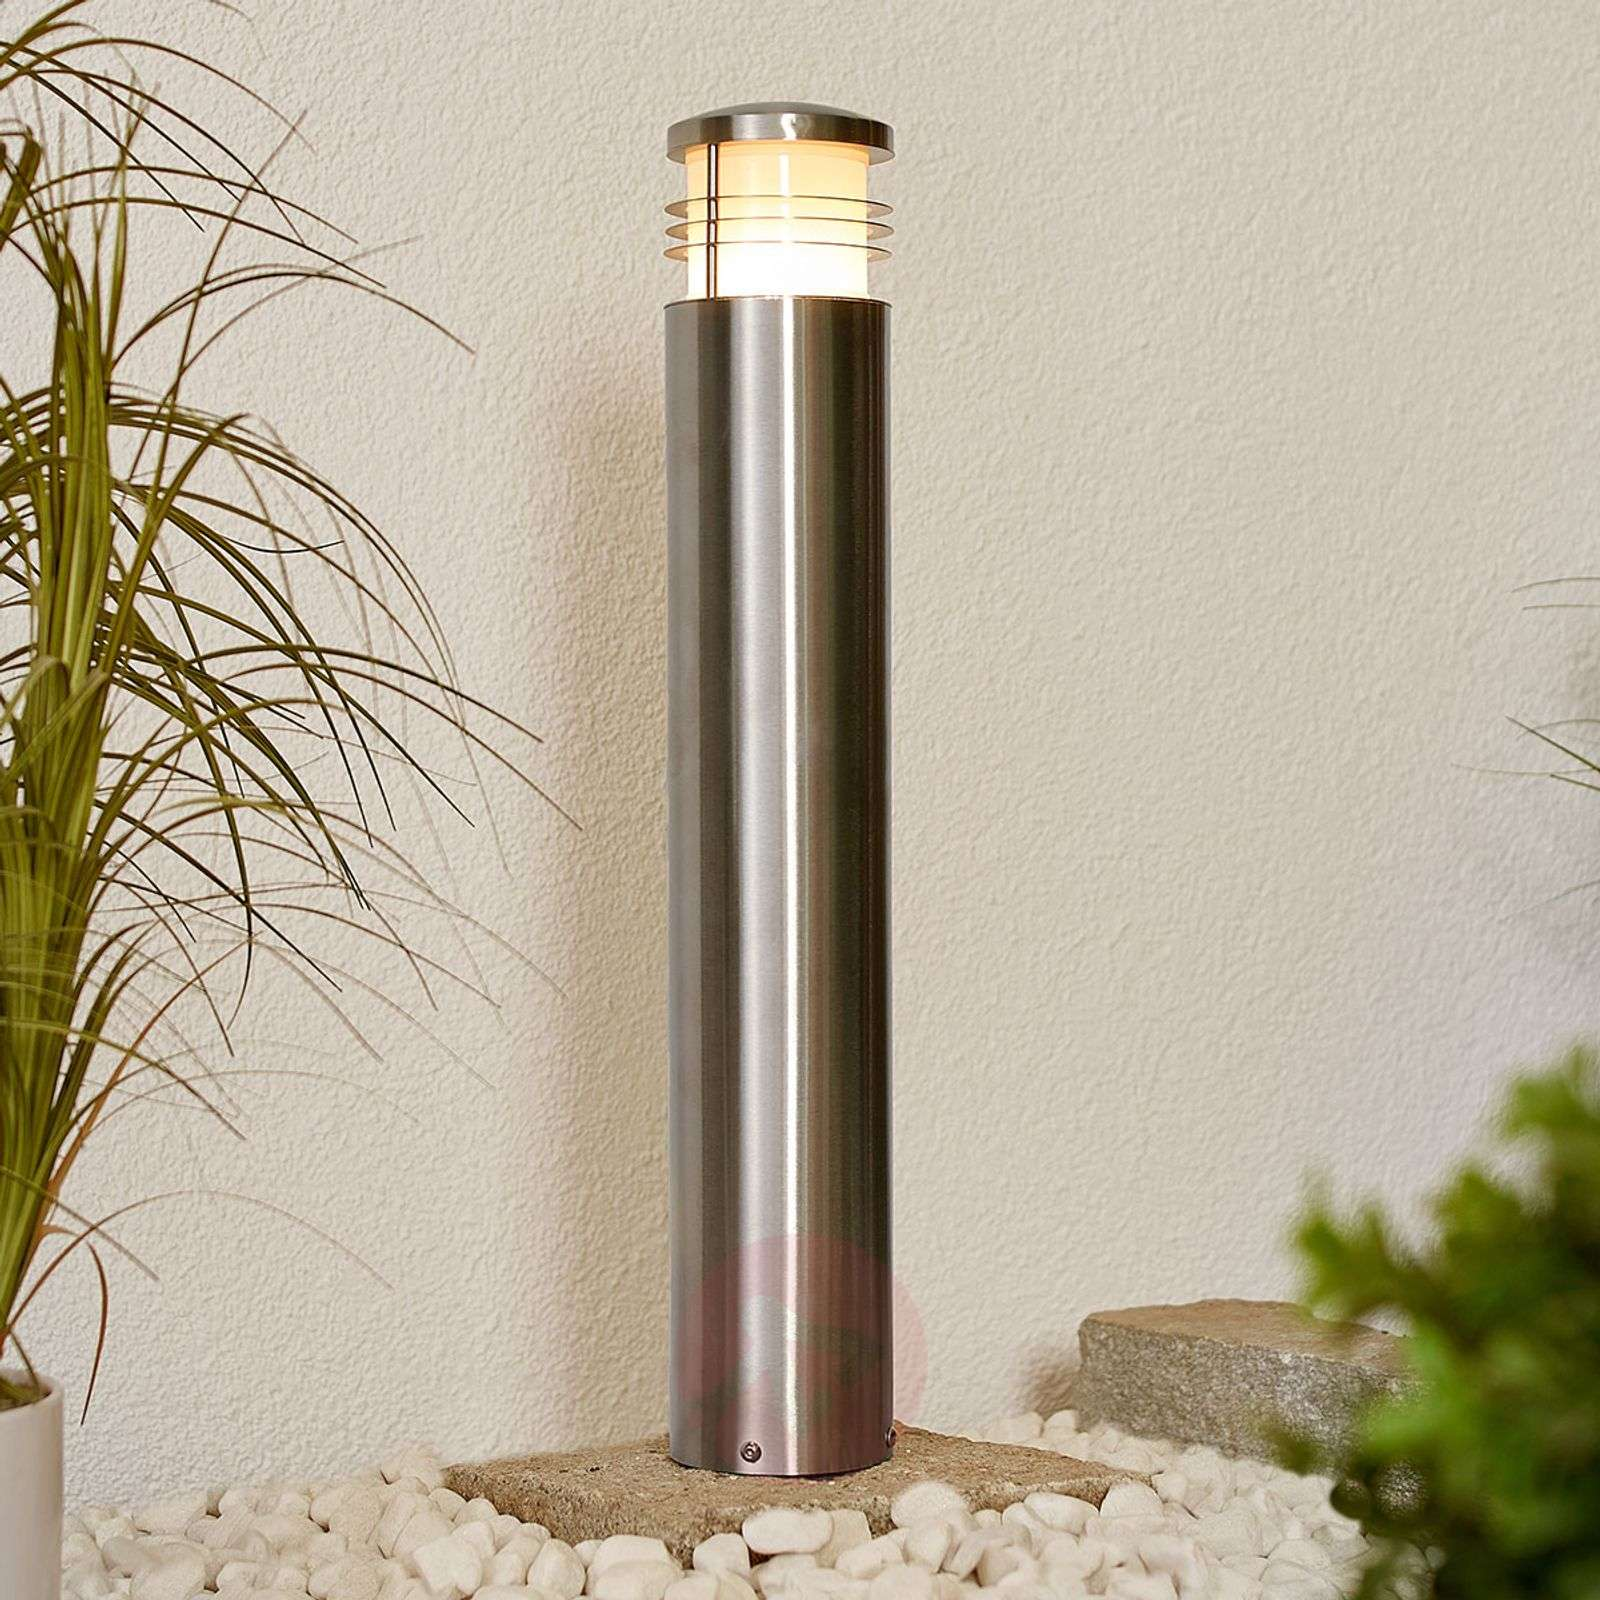 Stainless steel path light Adenika, seawater res.-9943019-02